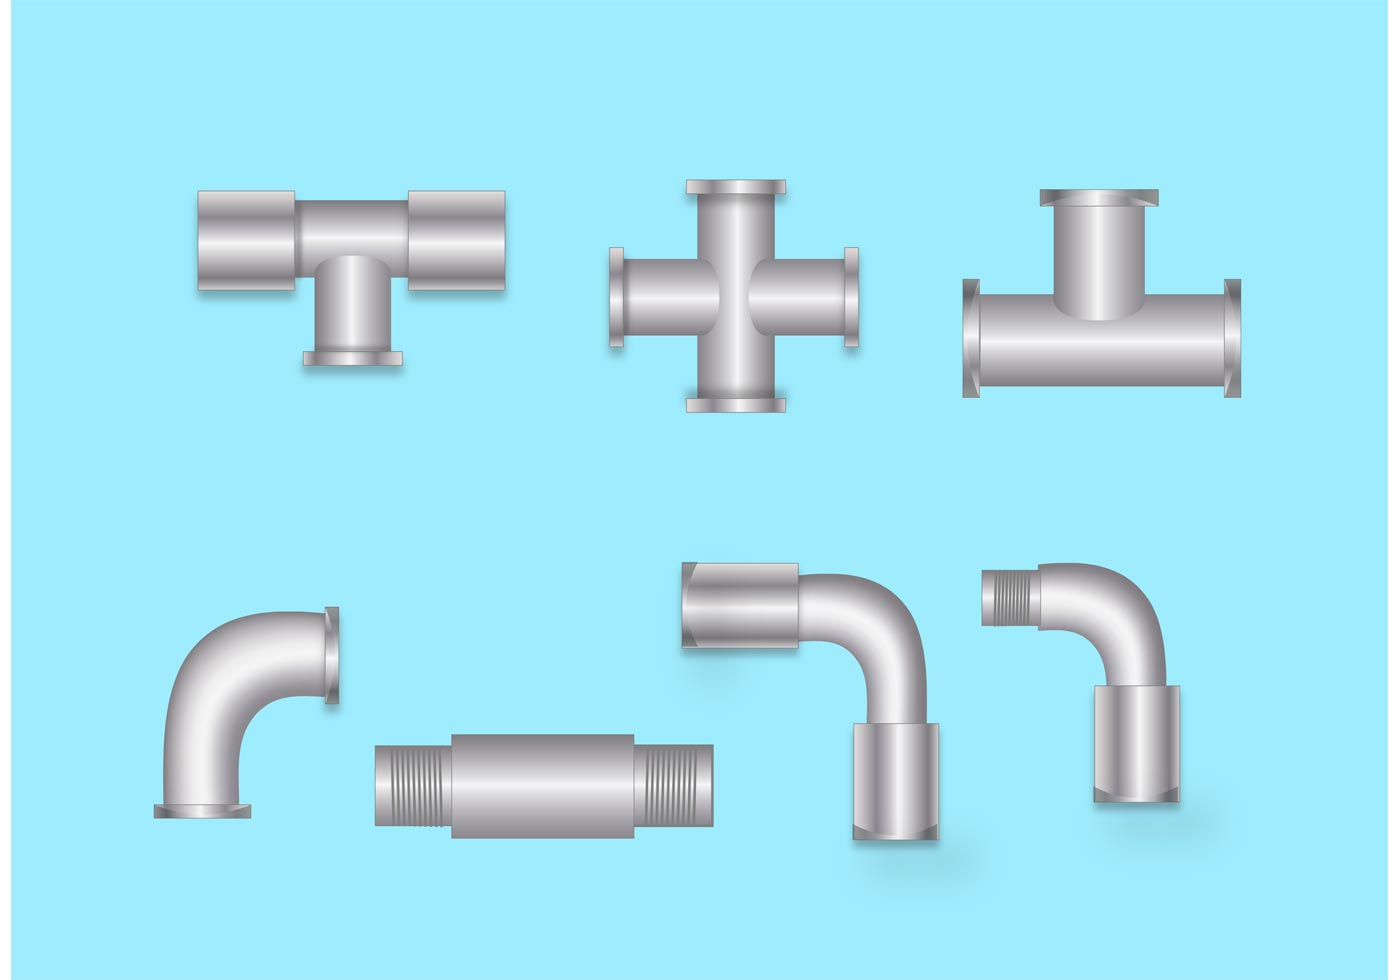 Sewer pipe fittings download free vector art stock for Sewer drain pipe